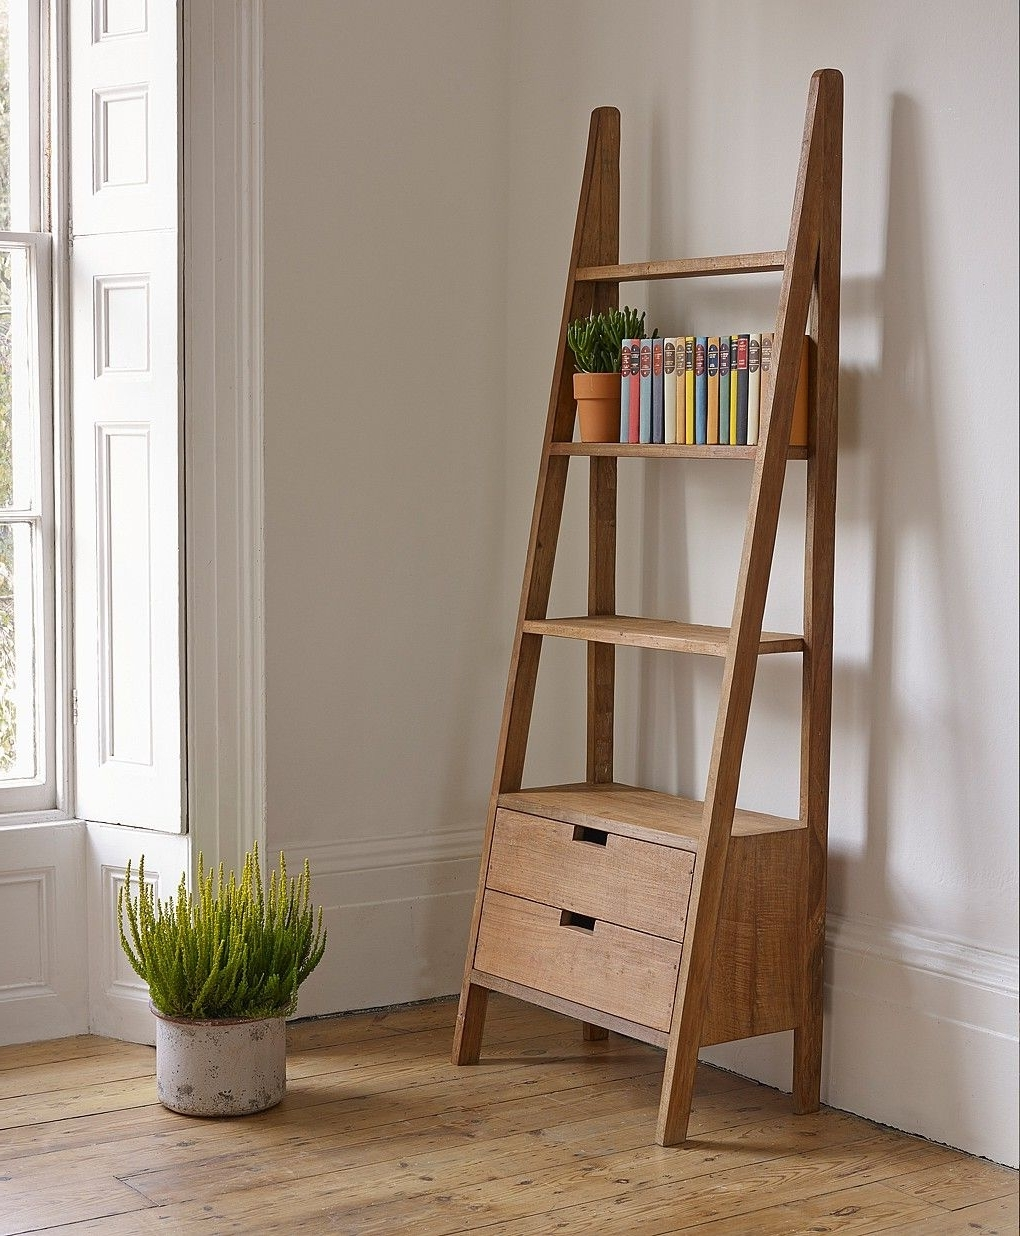 Preferred Ladder Bookcases With Drawers Throughout Statuette Of Outstanding Storage Ideas With A Ladder Shelving Unit (View 14 of 15)